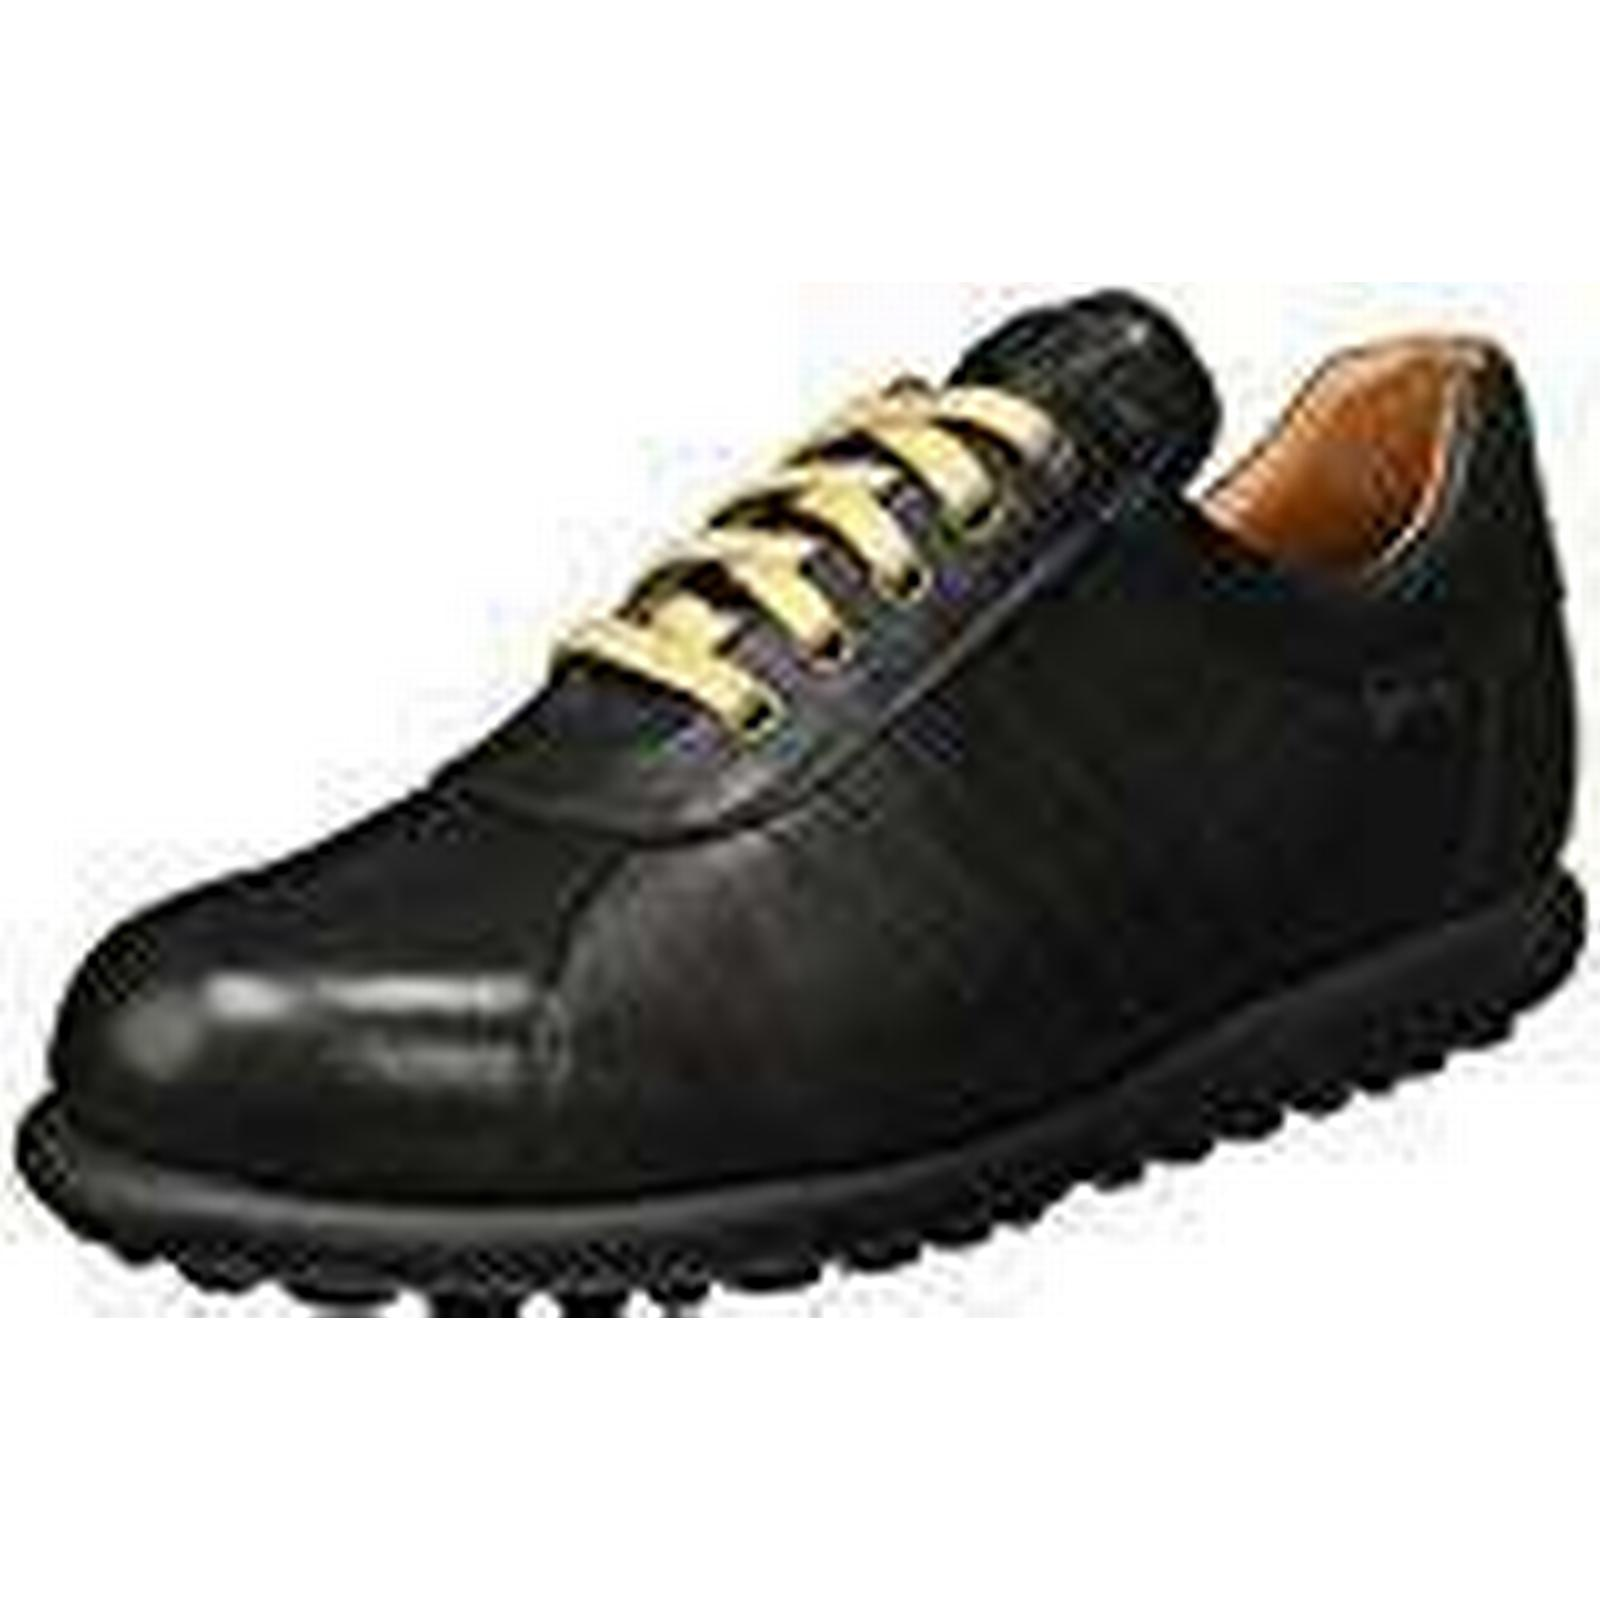 Camper Pelotas Ariel Men Low-Top 10 Sneakers, Black (Black 203), 10 Low-Top UK (44 EU) 8bc6cc